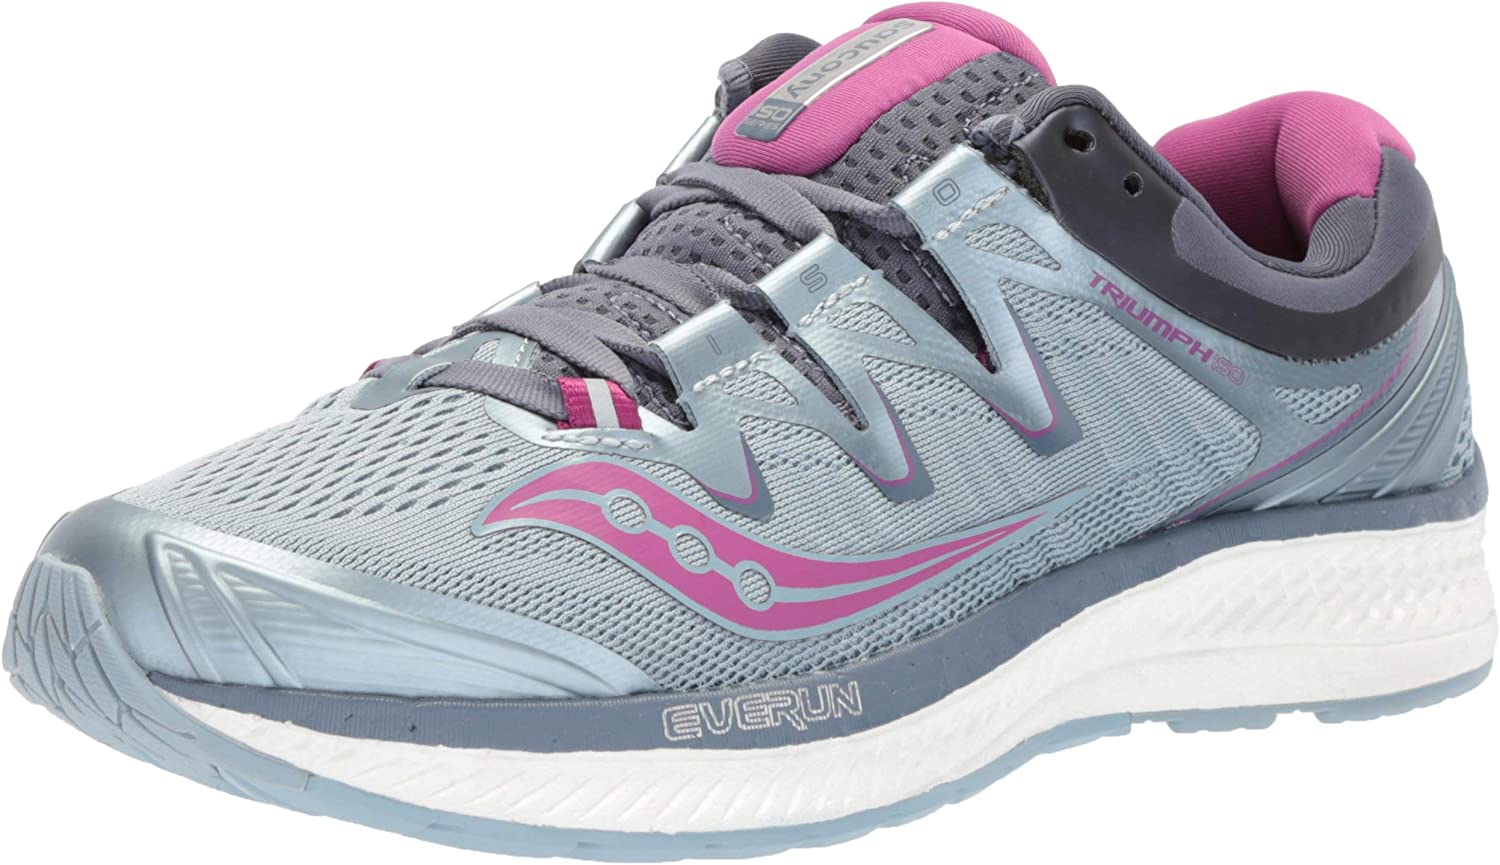 Saucony Unisex-Adult Colorado Springs Mall Women's Triumph High order 4 Running Shoe ISO